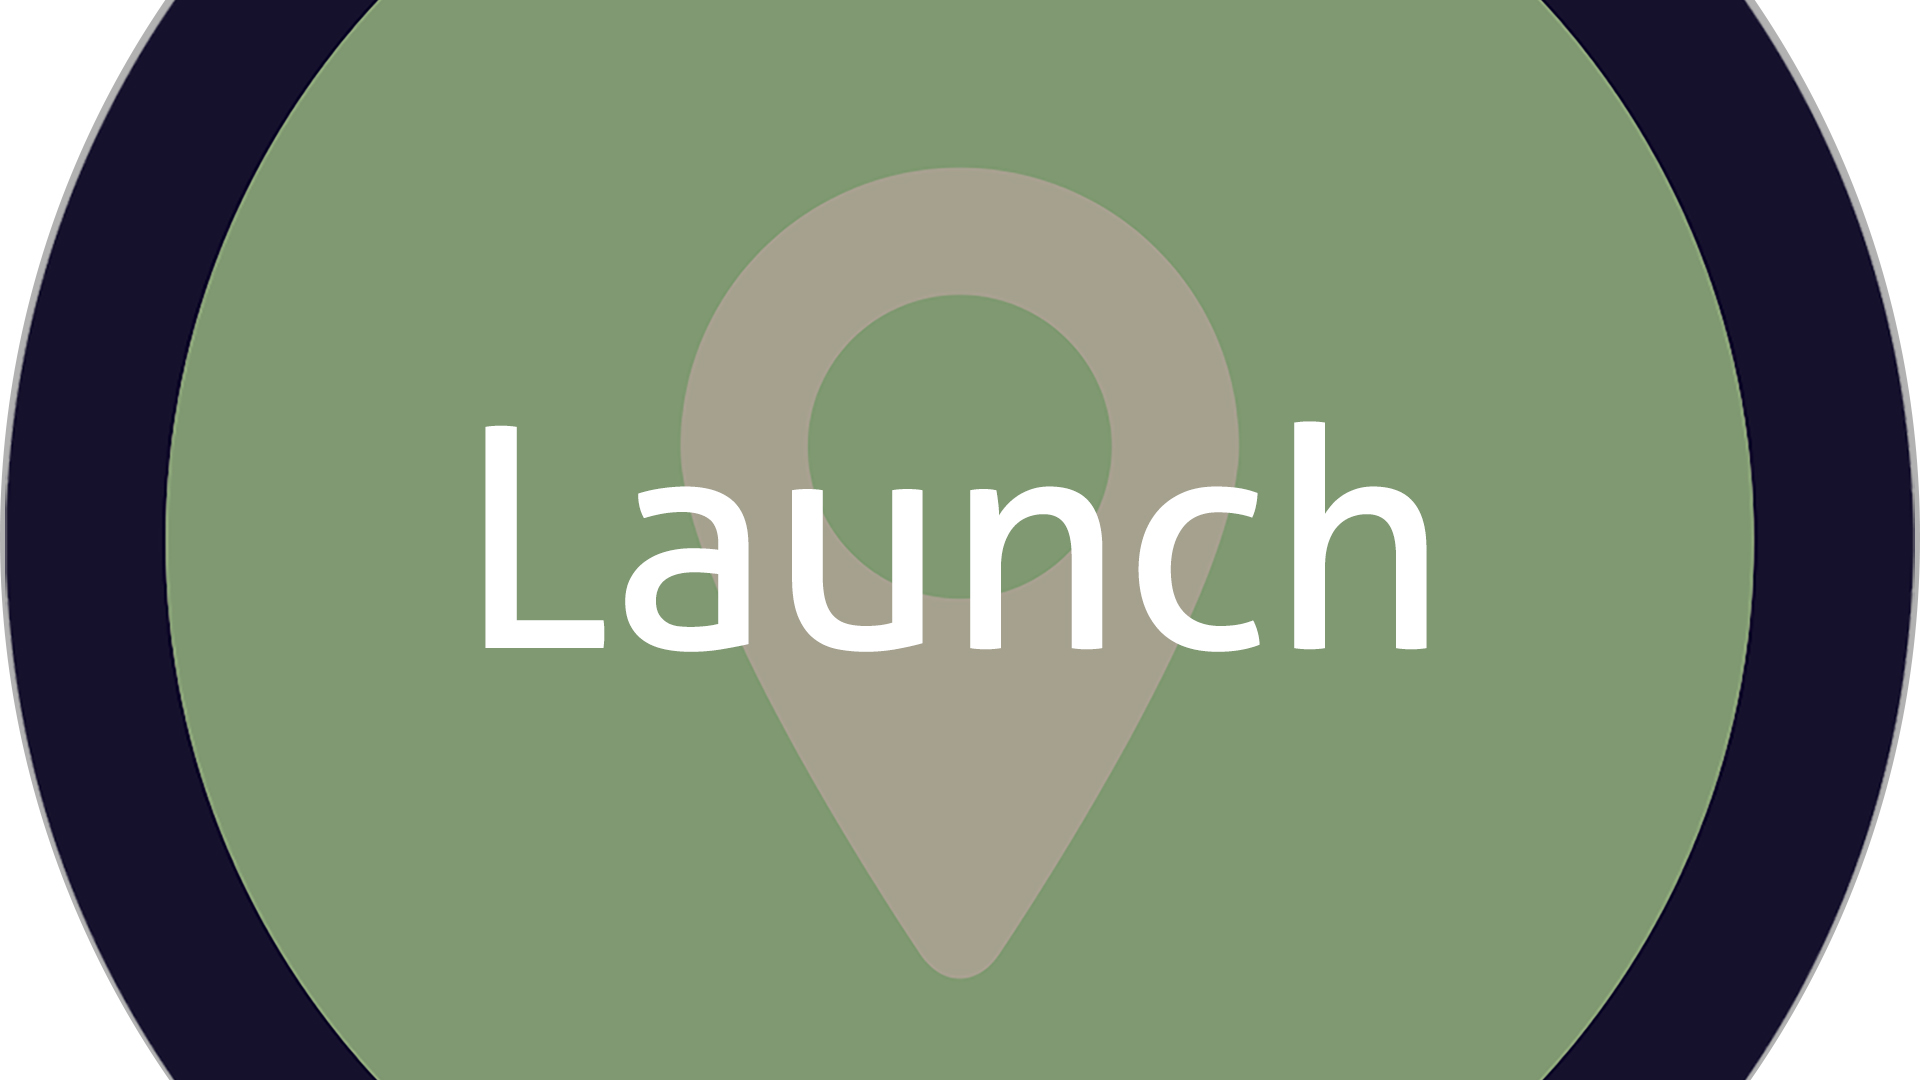 Launch Logo (1920x1080).jpg